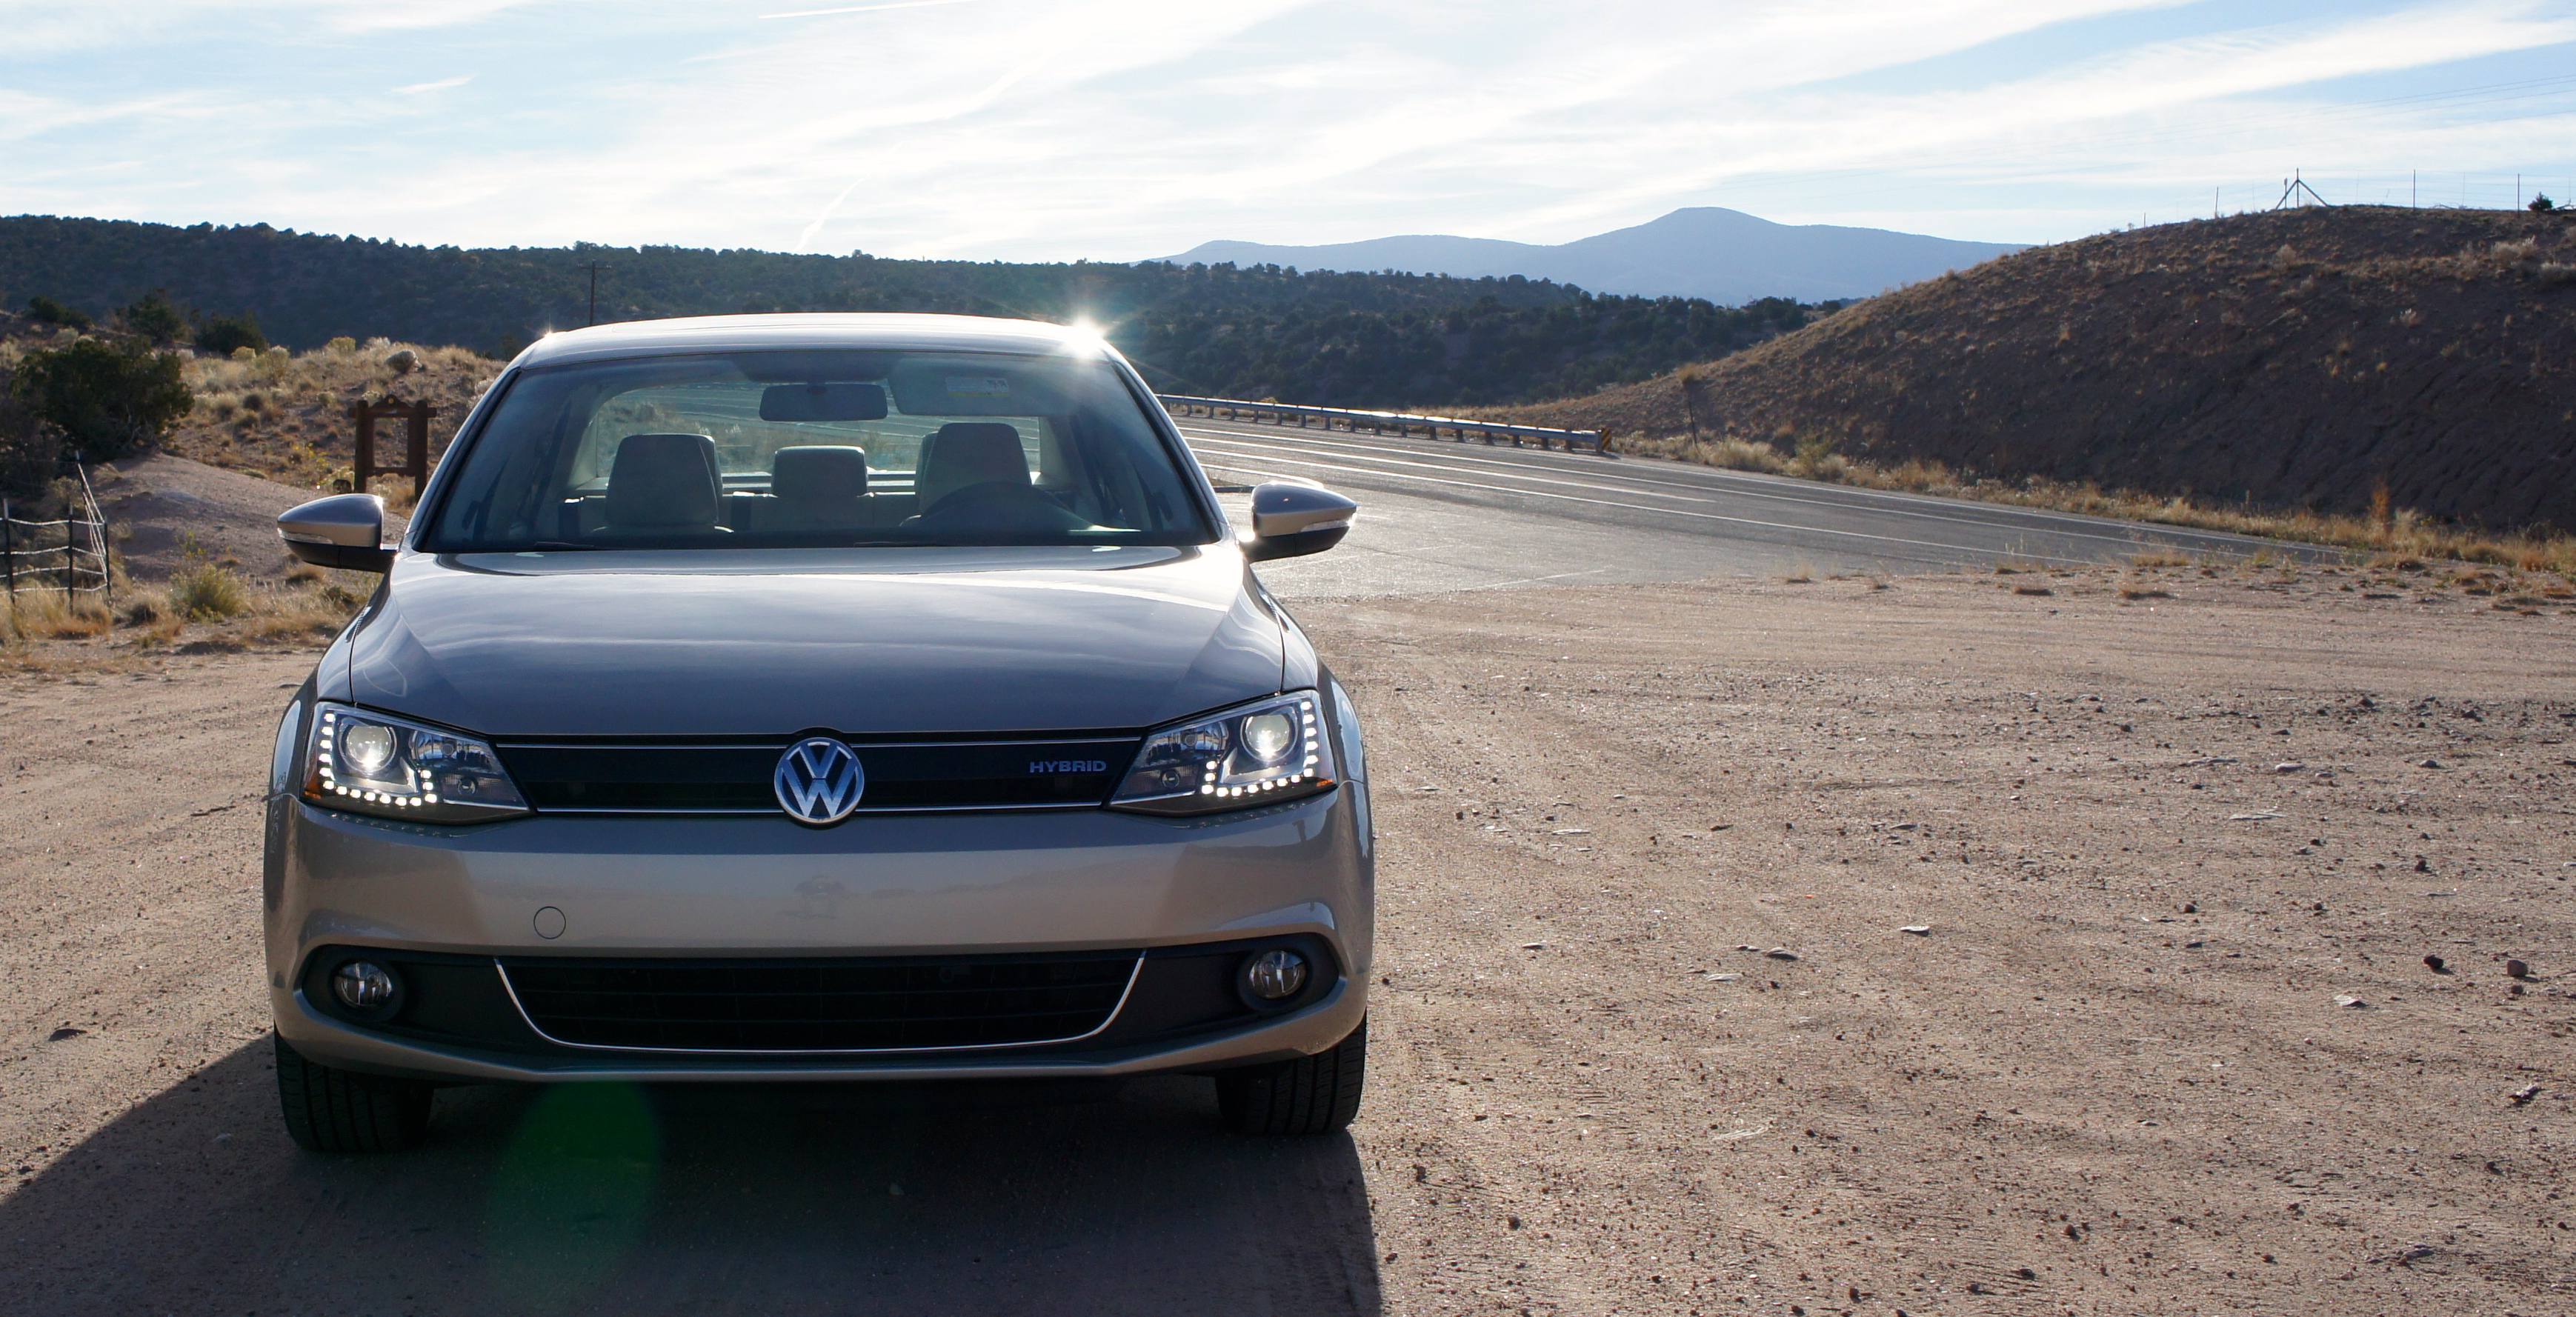 2013 Volkswagen Jetta Hybrid (photo by Sam Miller-Christiansen)